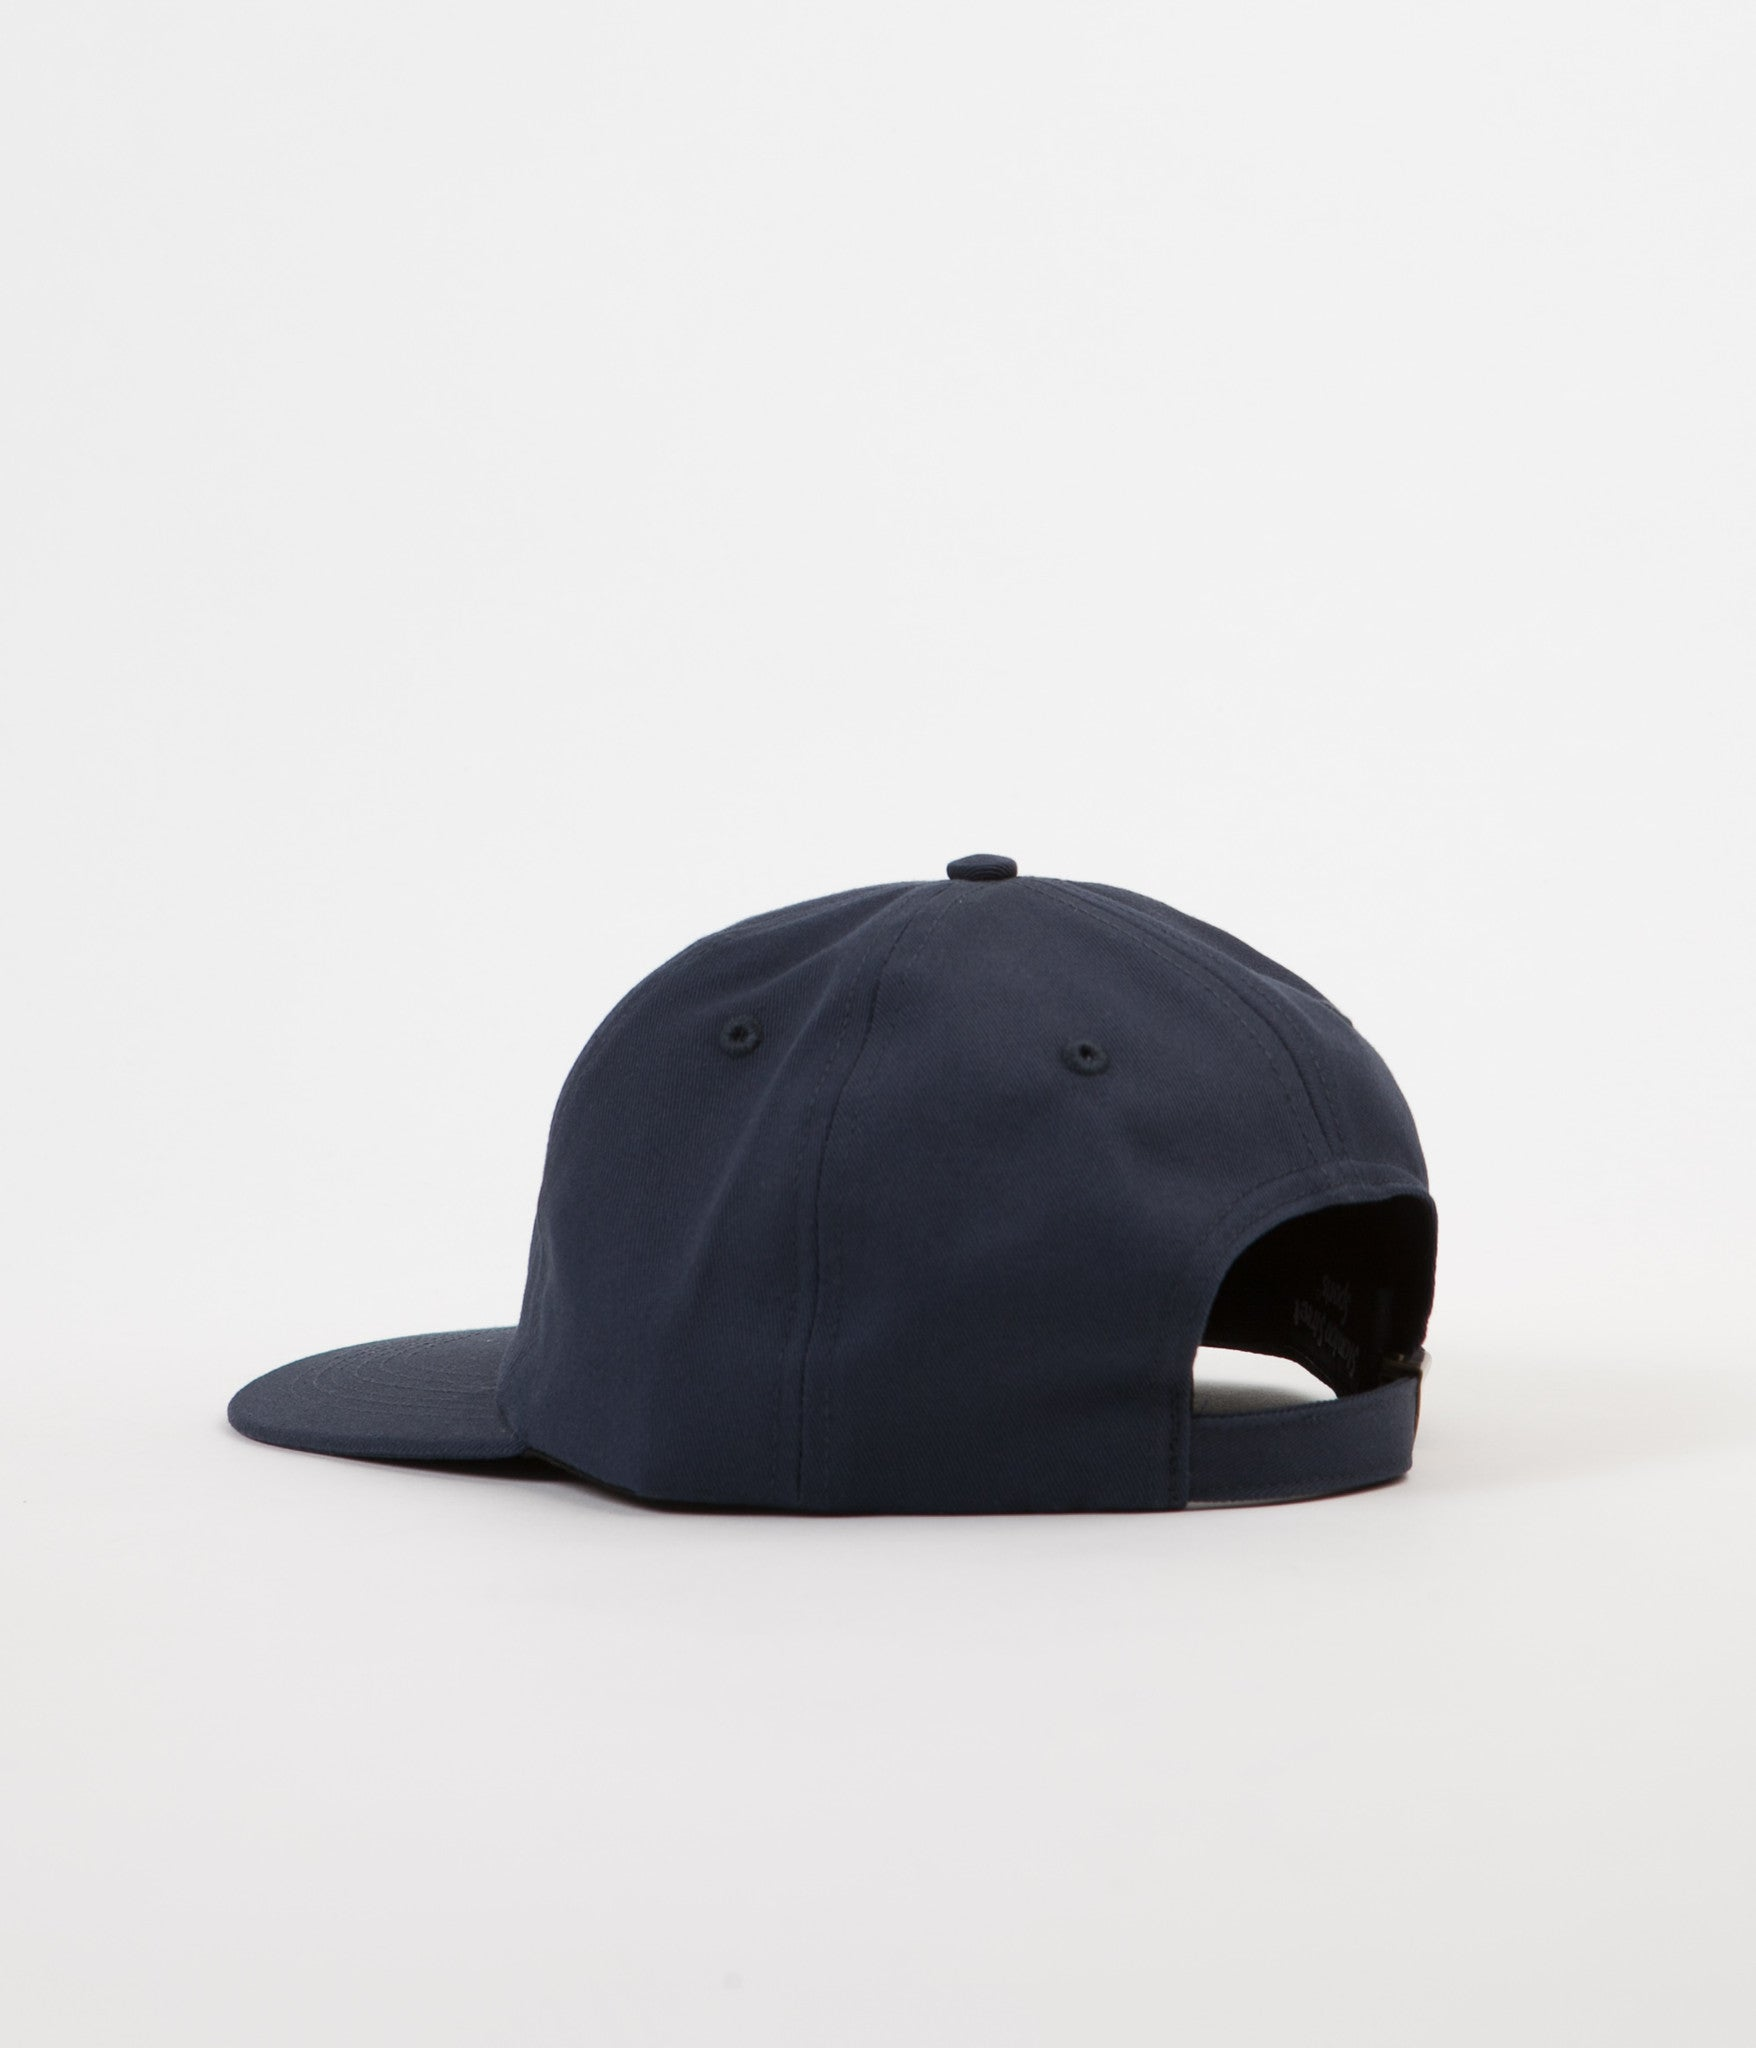 Stanton Street Sports SSS Liberty Polo Cap - Navy